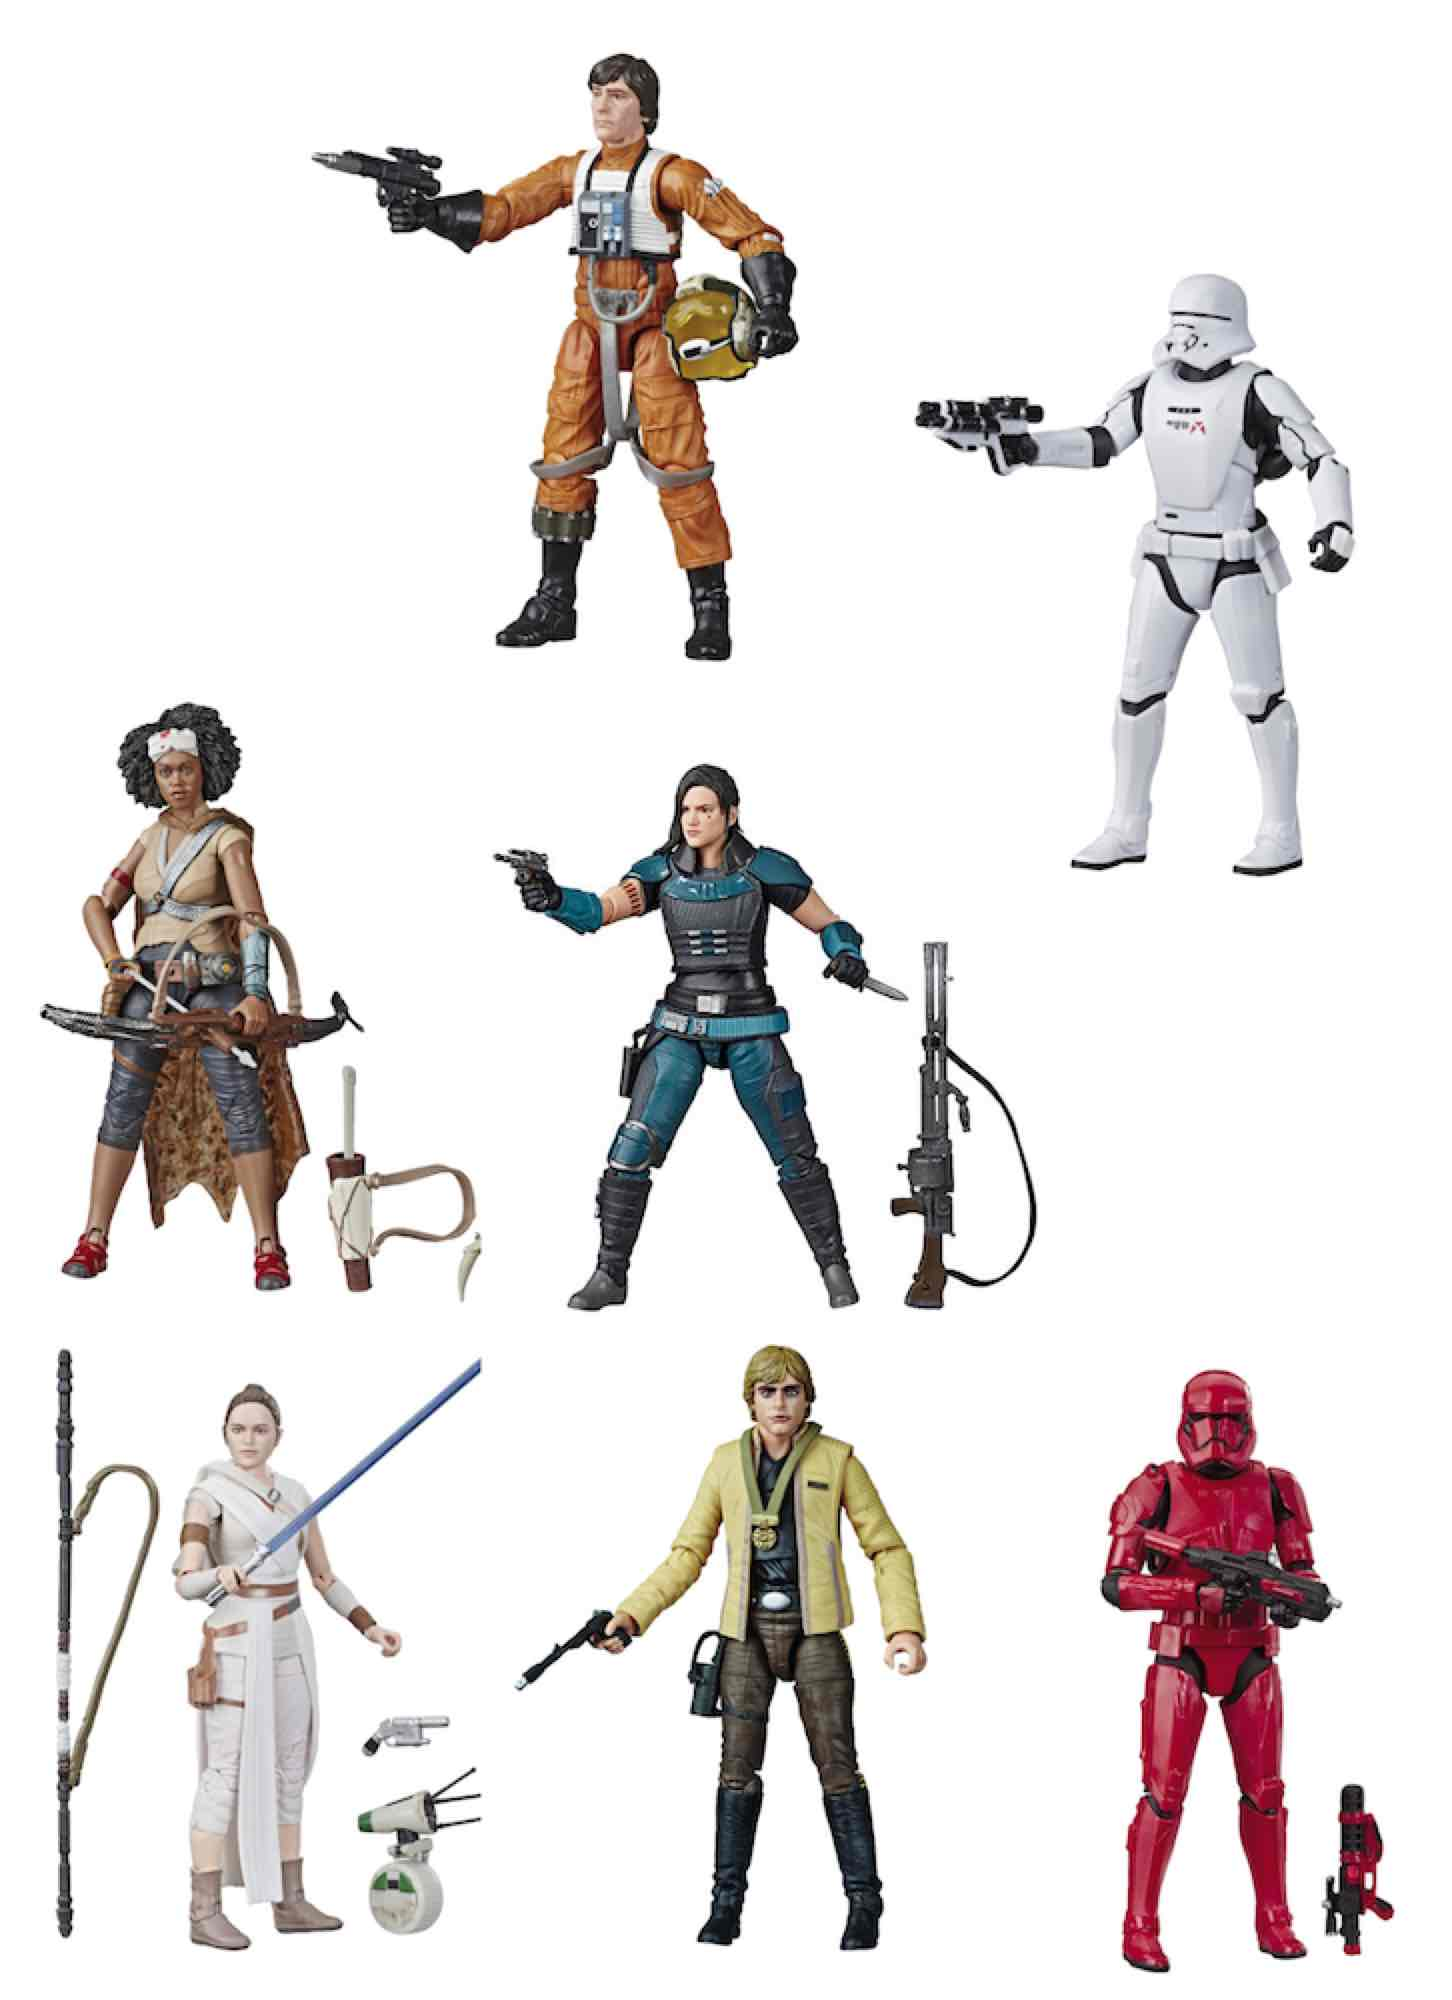 STAR WARS BLACK SERIES SURTIDO 8 FIGURAS 15 CM STAR WARS E4071EU41 S2